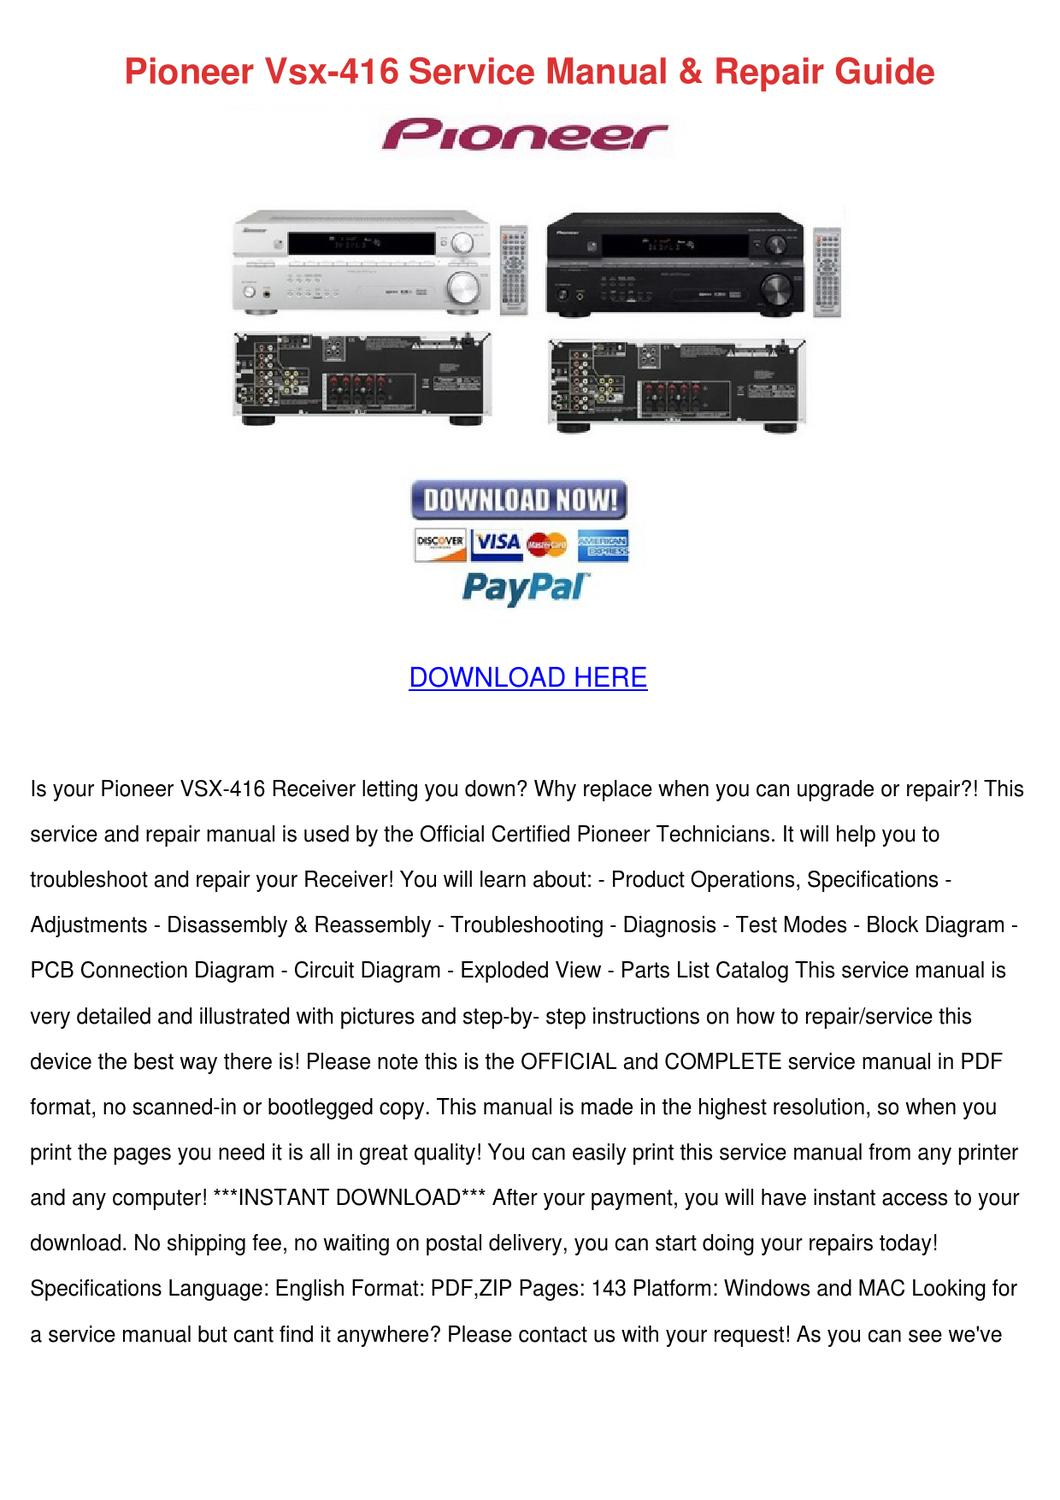 Pioneer Vsx 416 Service Manual Repair Guide by Amberly Peart - issuu